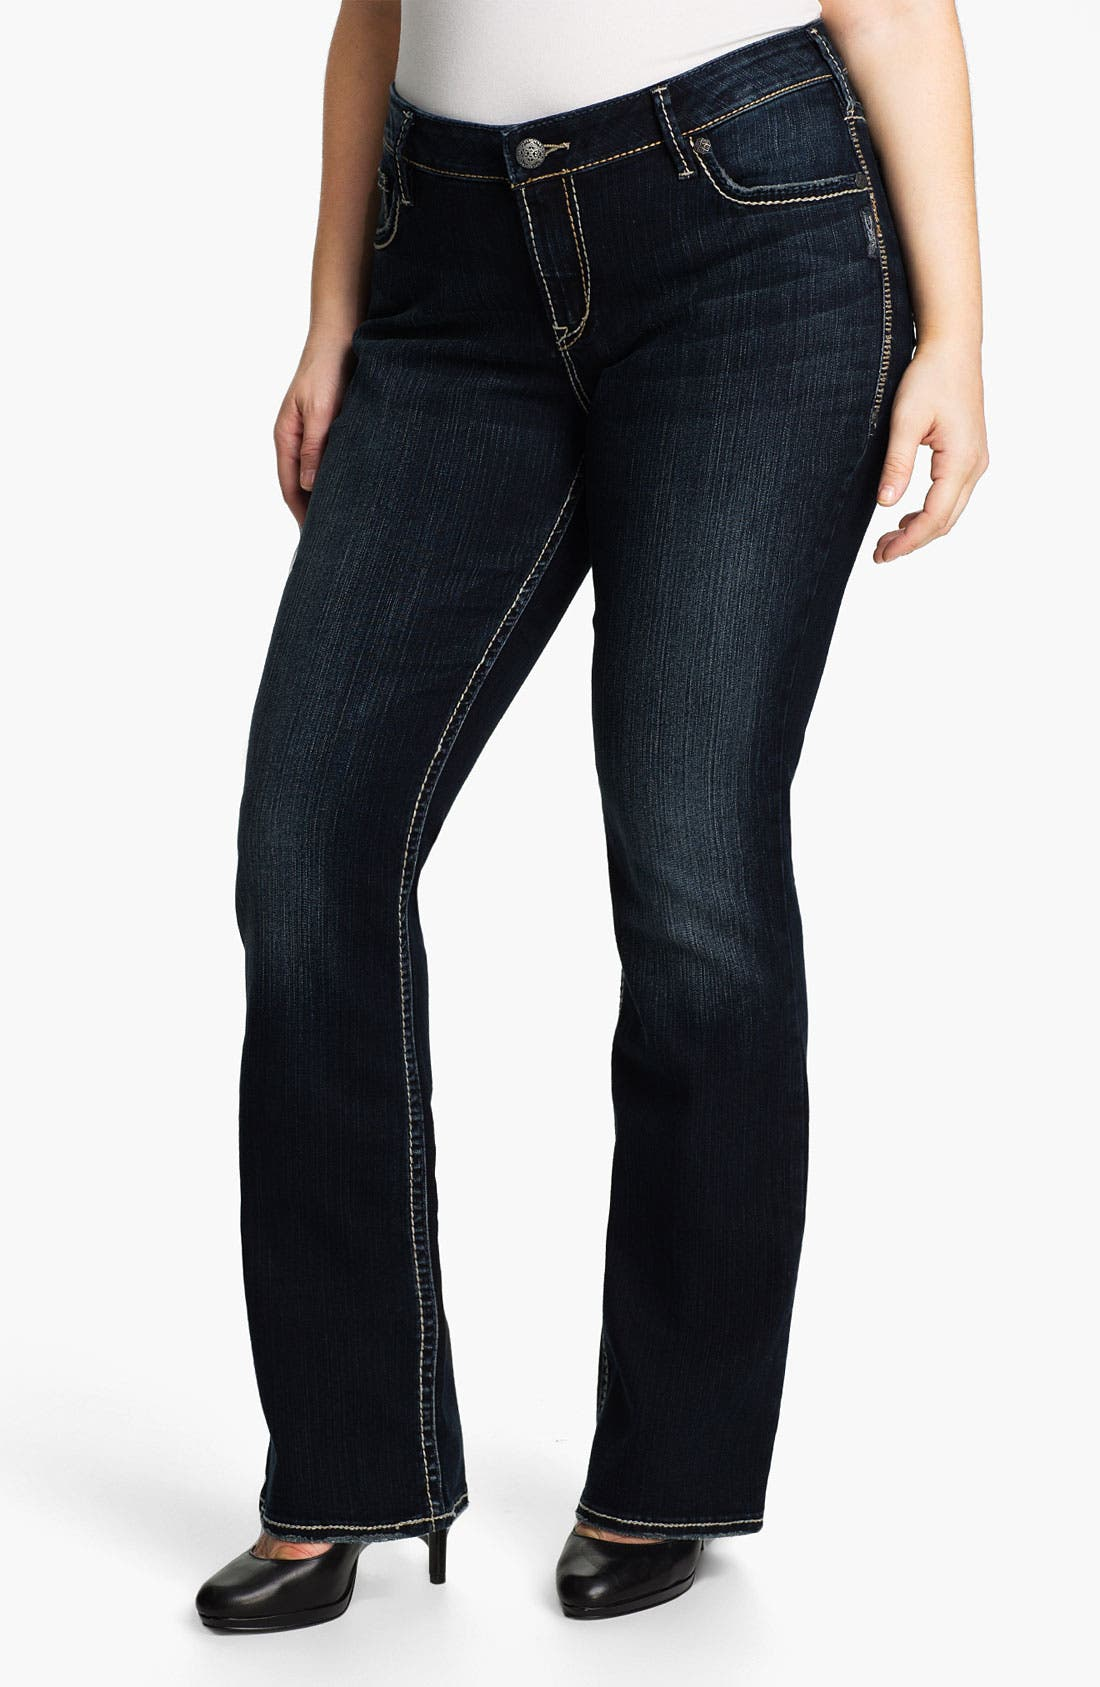 Main Image - Silver Jeans Co. 'Aiko' Bootcut Jeans (Plus)